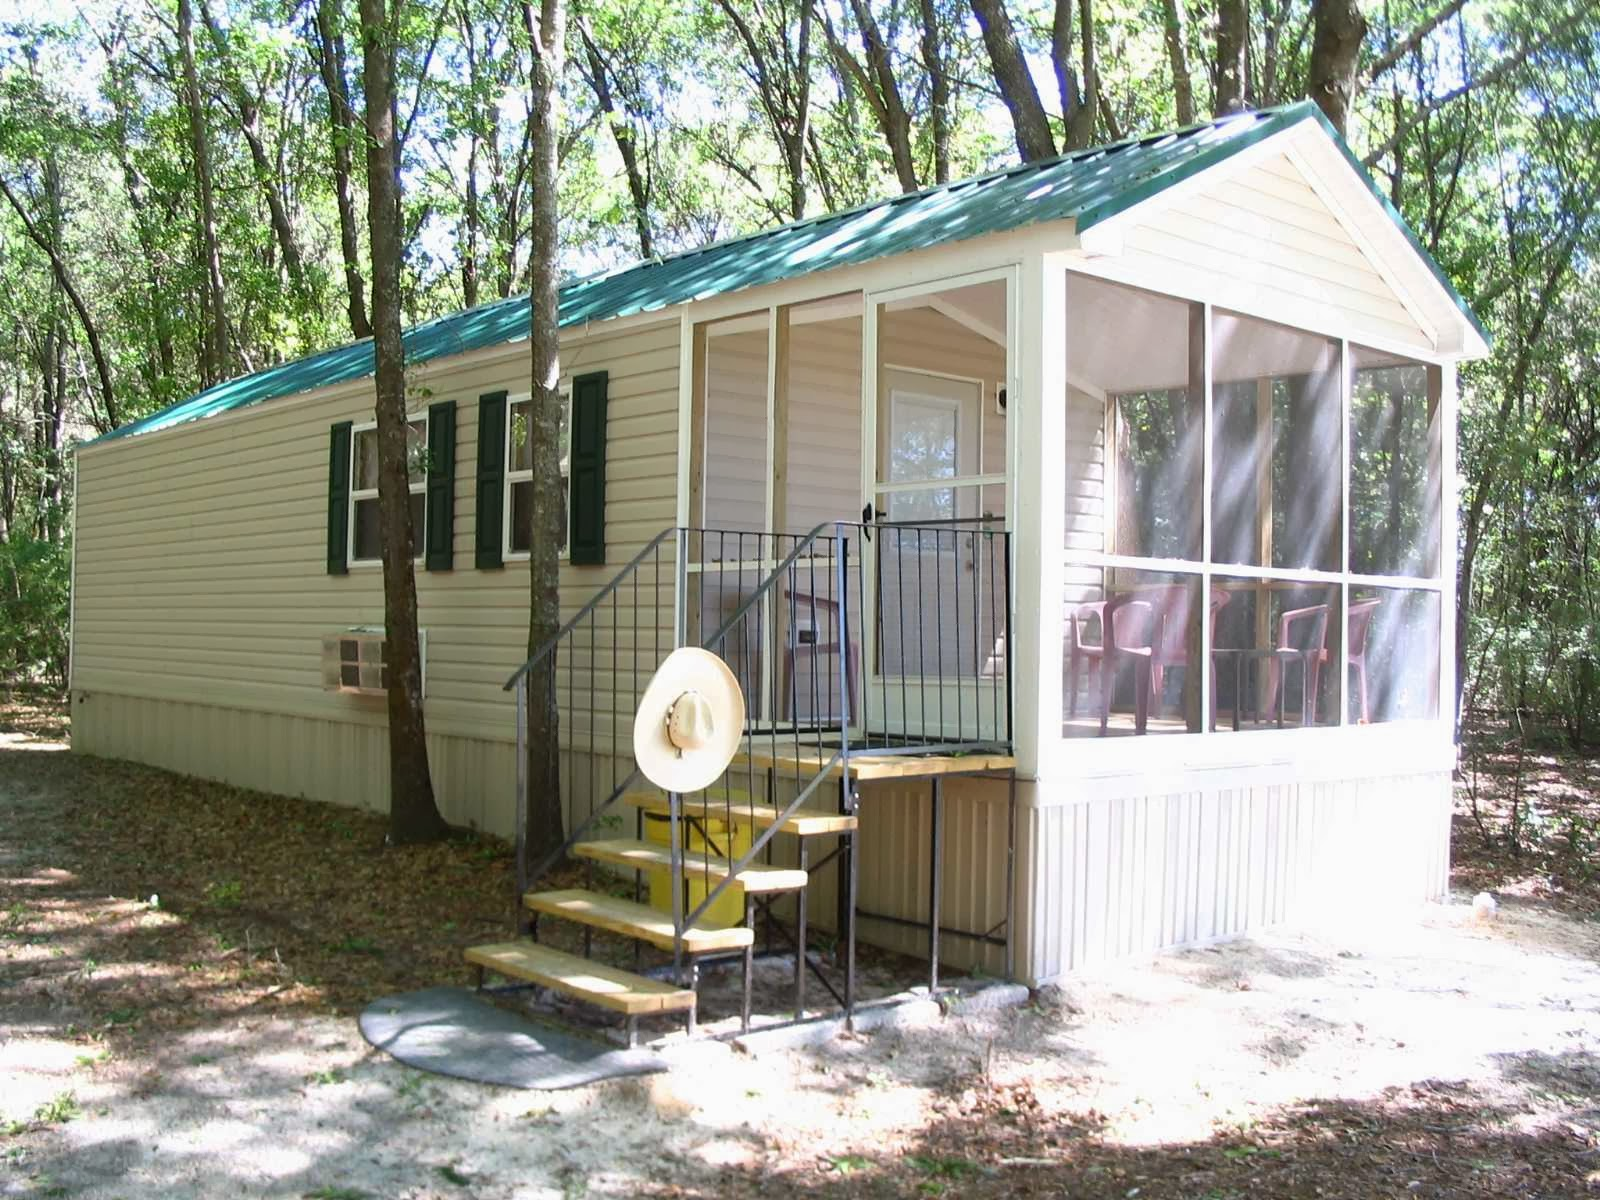 Shady Trails & Starry Nights Cabin Rentals